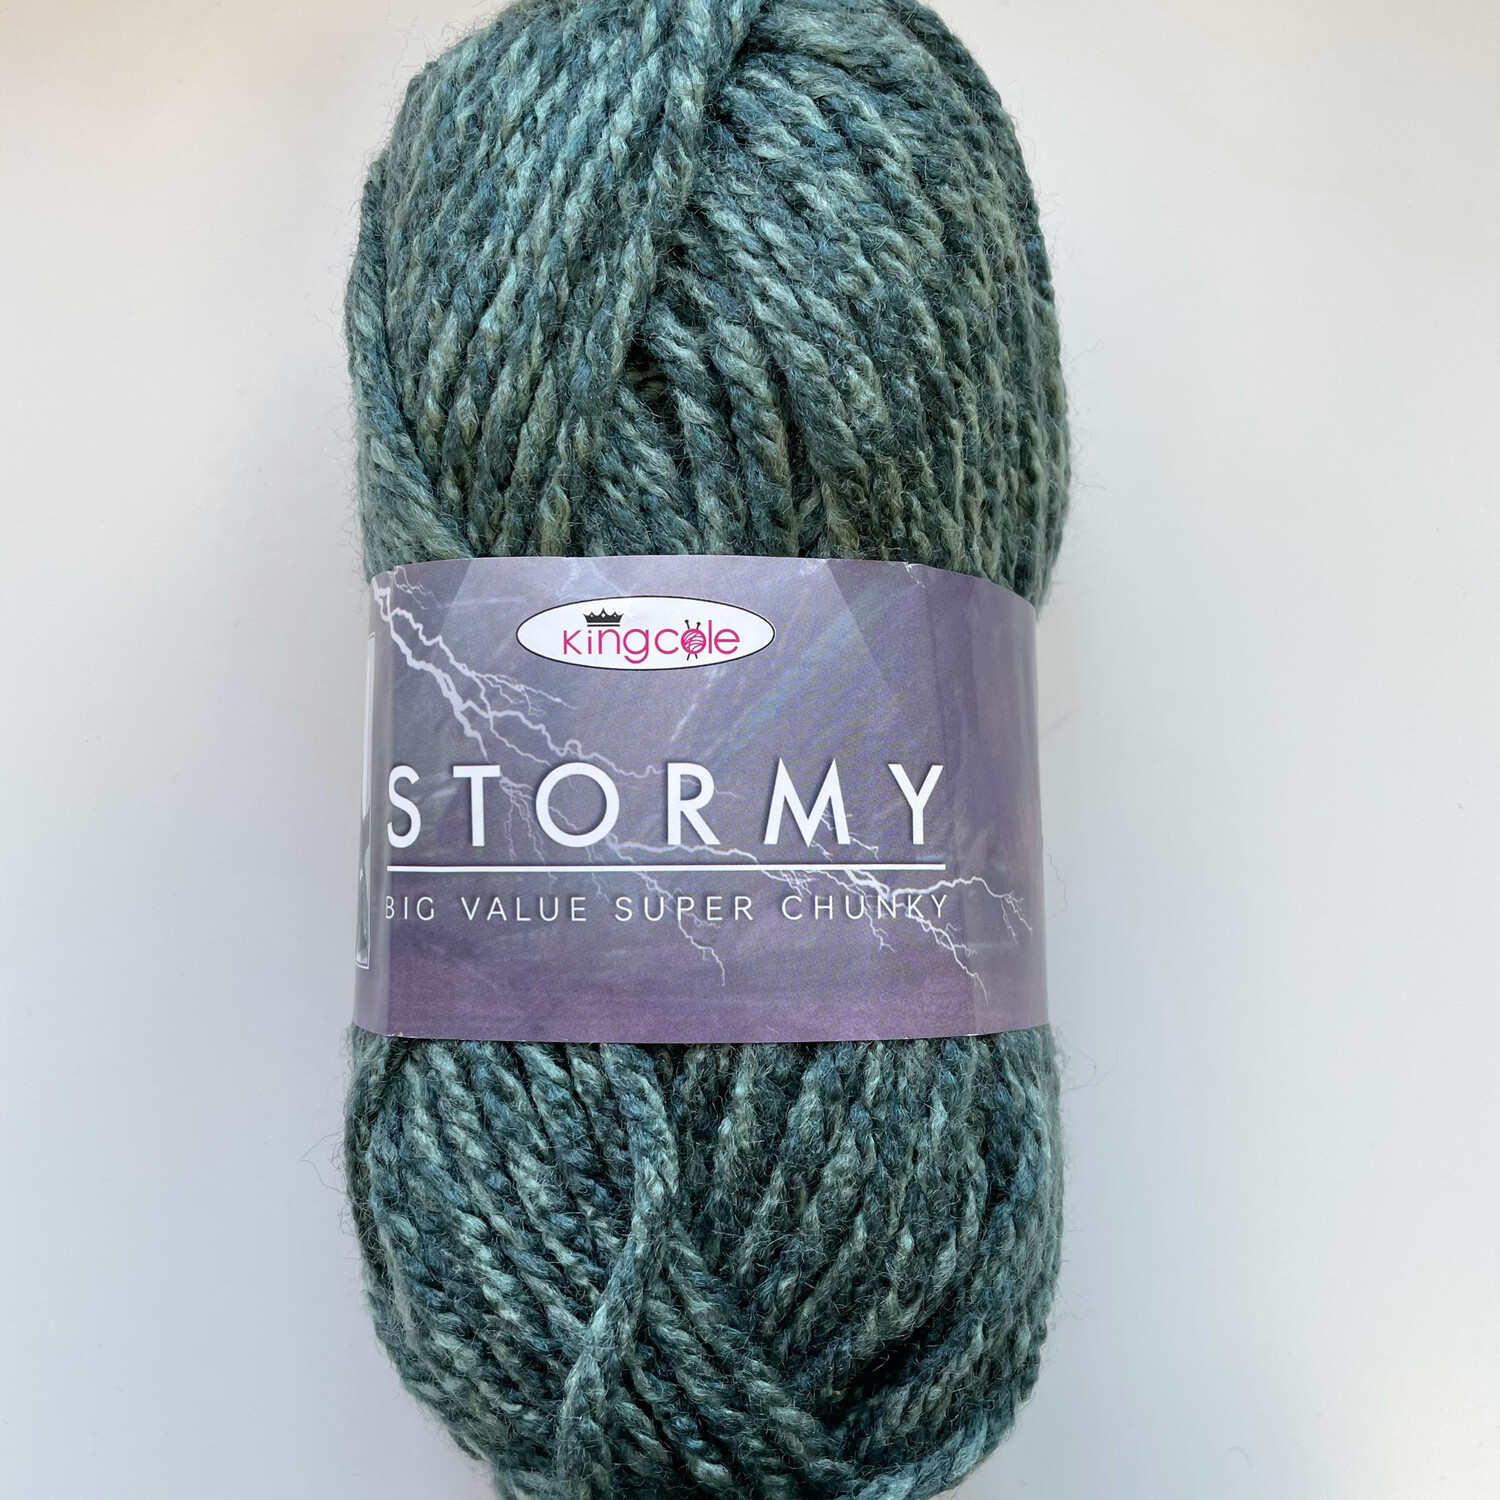 King Cole Big Value Super Chunky Stormy - Cyclone